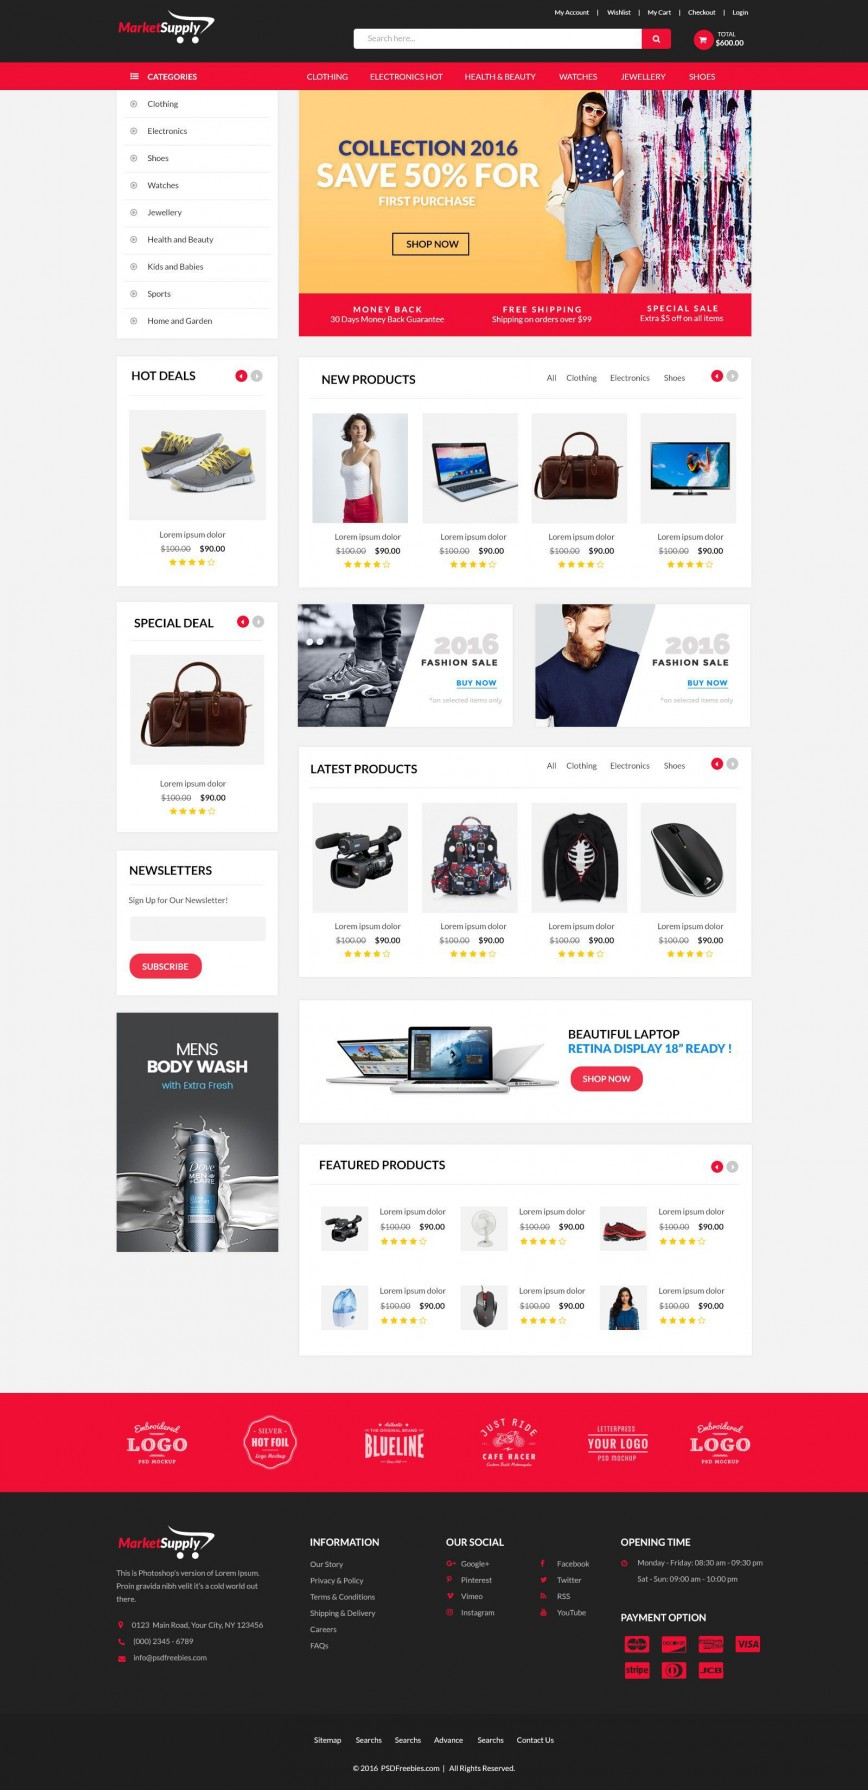 000 Shocking Free Php Website Template Idea  With Admin Panel Download Source Code And Database Cm868